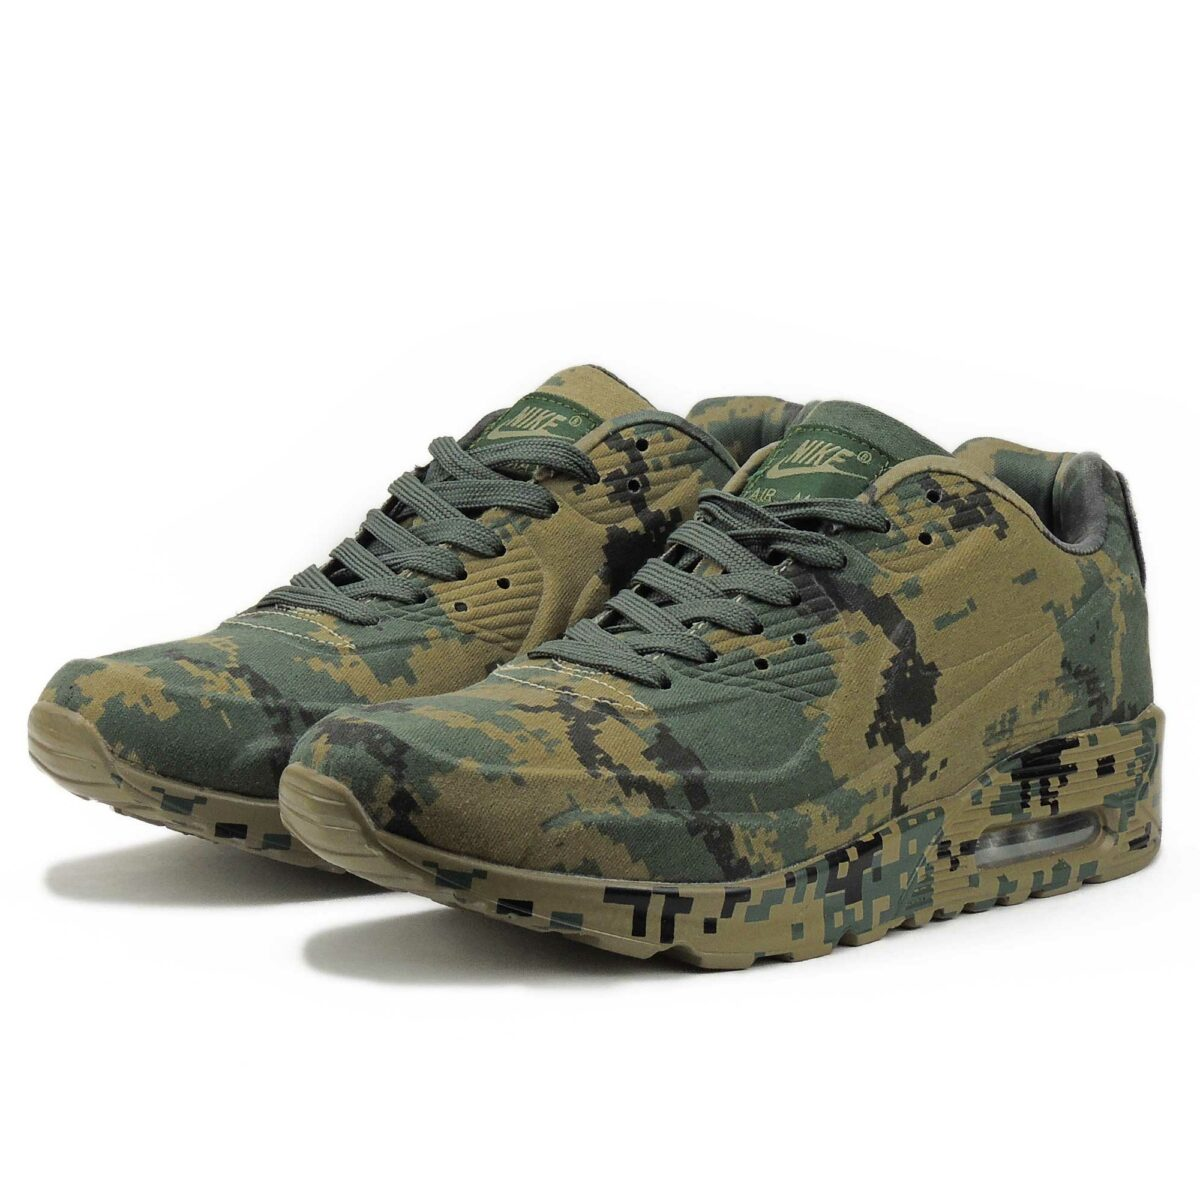 nike air max 90 VT military camouflage brown picsel 486988_521 купить